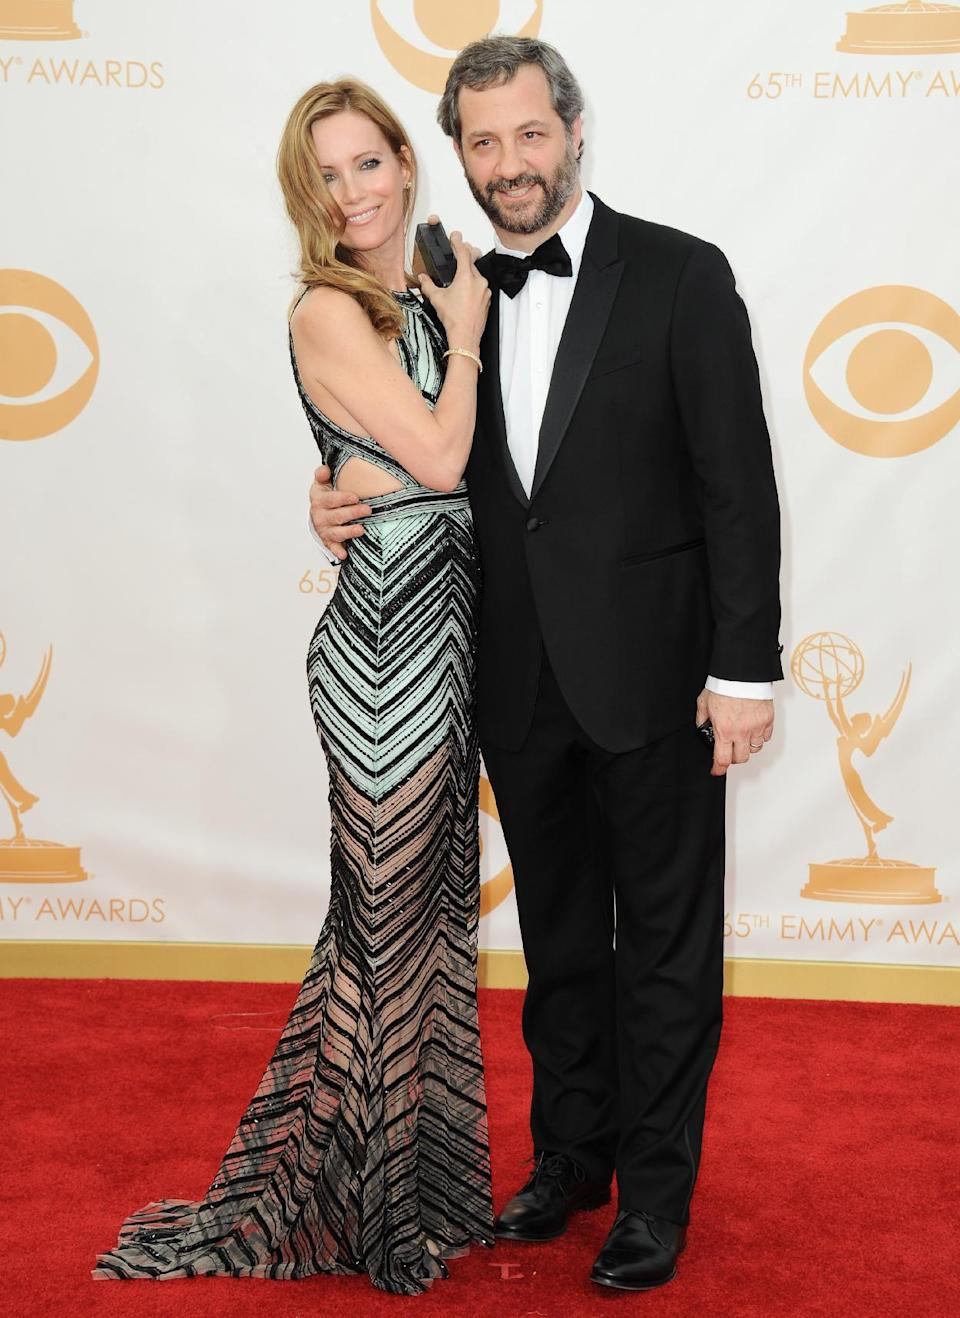 Leslie Mann, left, and Judd Apatow arrive at the 65th Primetime Emmy Awards at Nokia Theatre on Sunday Sept. 22, 2013, in Los Angeles. (Photo by Jordan Strauss/Invision/AP)